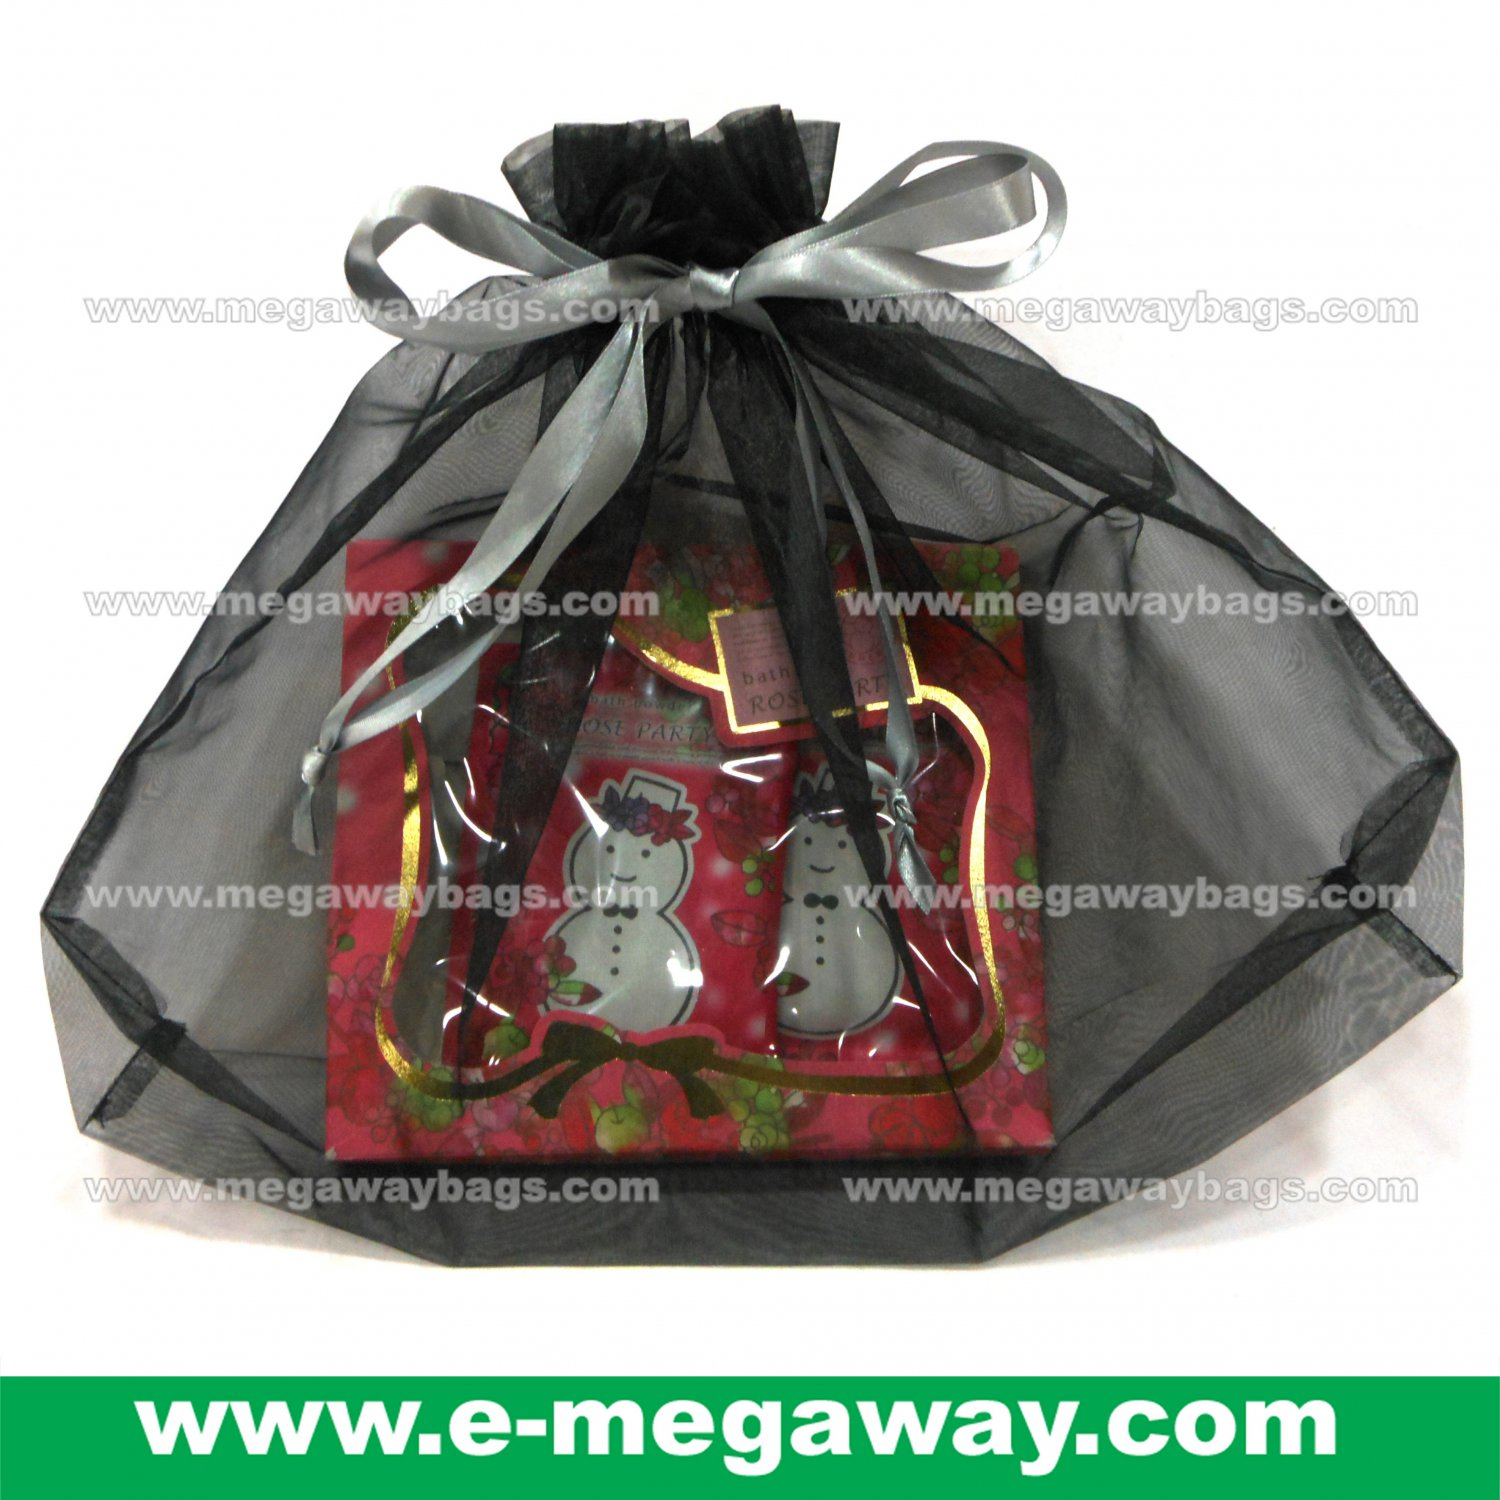 Mesh Organza Draw Sting Pouch Sac Bags Clothes Package Tidy Gifts MegawayBags #CC-0927